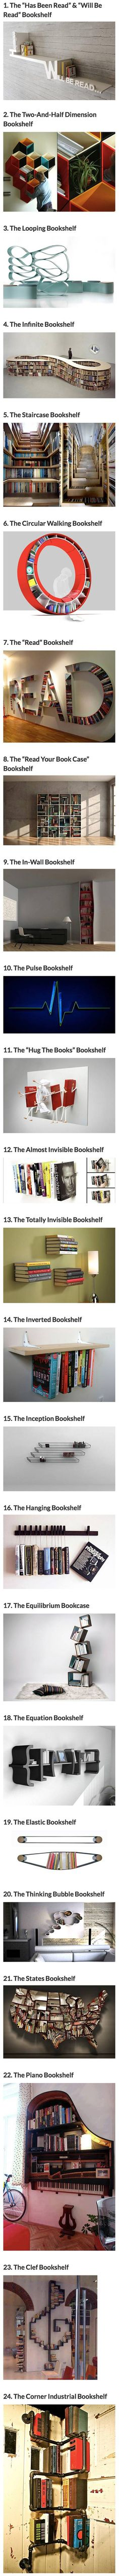 We have rounded up some cool and creative bookshelves that geeks would love. << I love the infinity and staircase bookshelves! I would want the staircase and invisible shelves. Creative Bookshelves, Bookshelf Design, Bookshelf Ideas, Bookshelf Styling, Floating Bookshelves, Decorating Bookshelves, Desk Ideas, Furniture Ideas, Ideias Diy